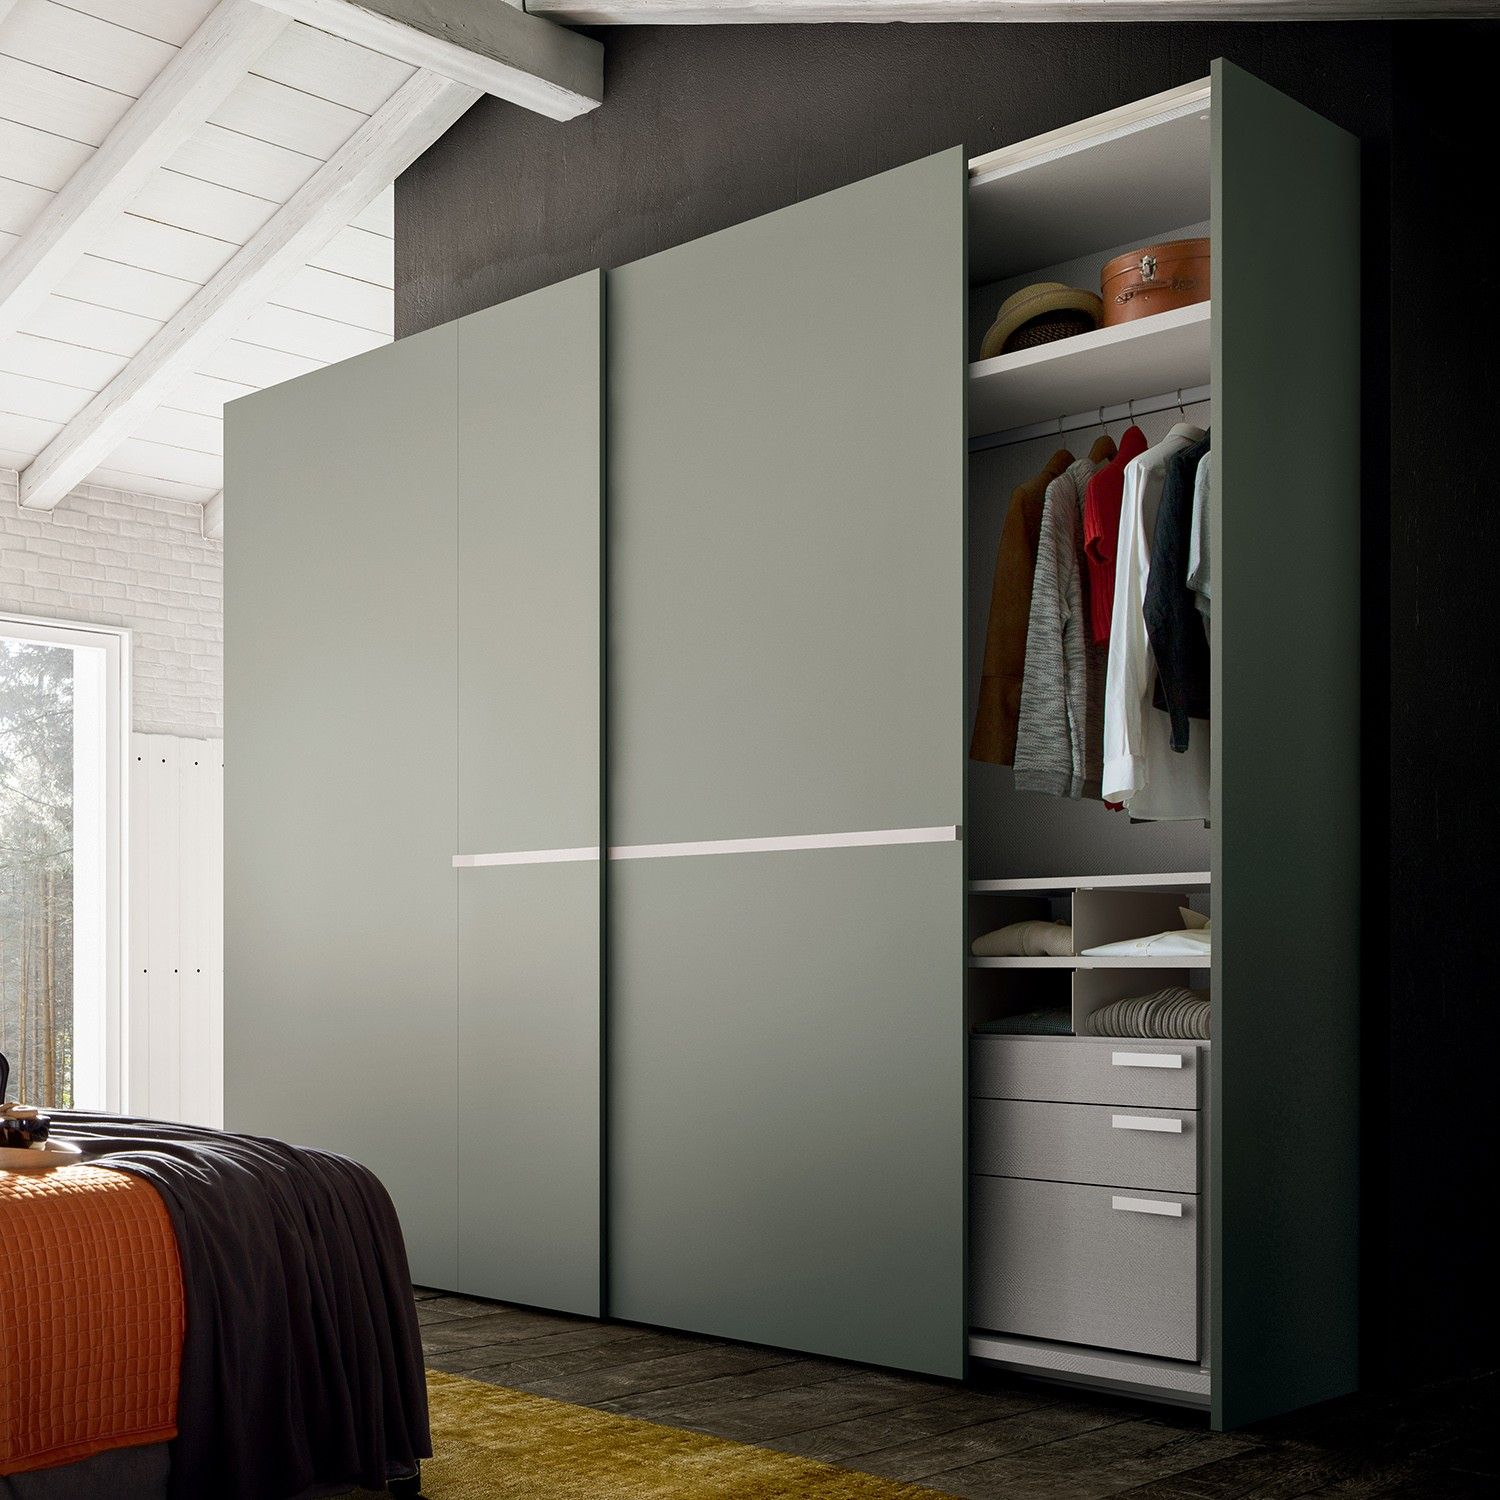 Focus Narrow Depth Sliding Wardrobe Diotti Com Bedroom Closet Design Wardrobe Door Designs Sliding Door Wardrobe Designs